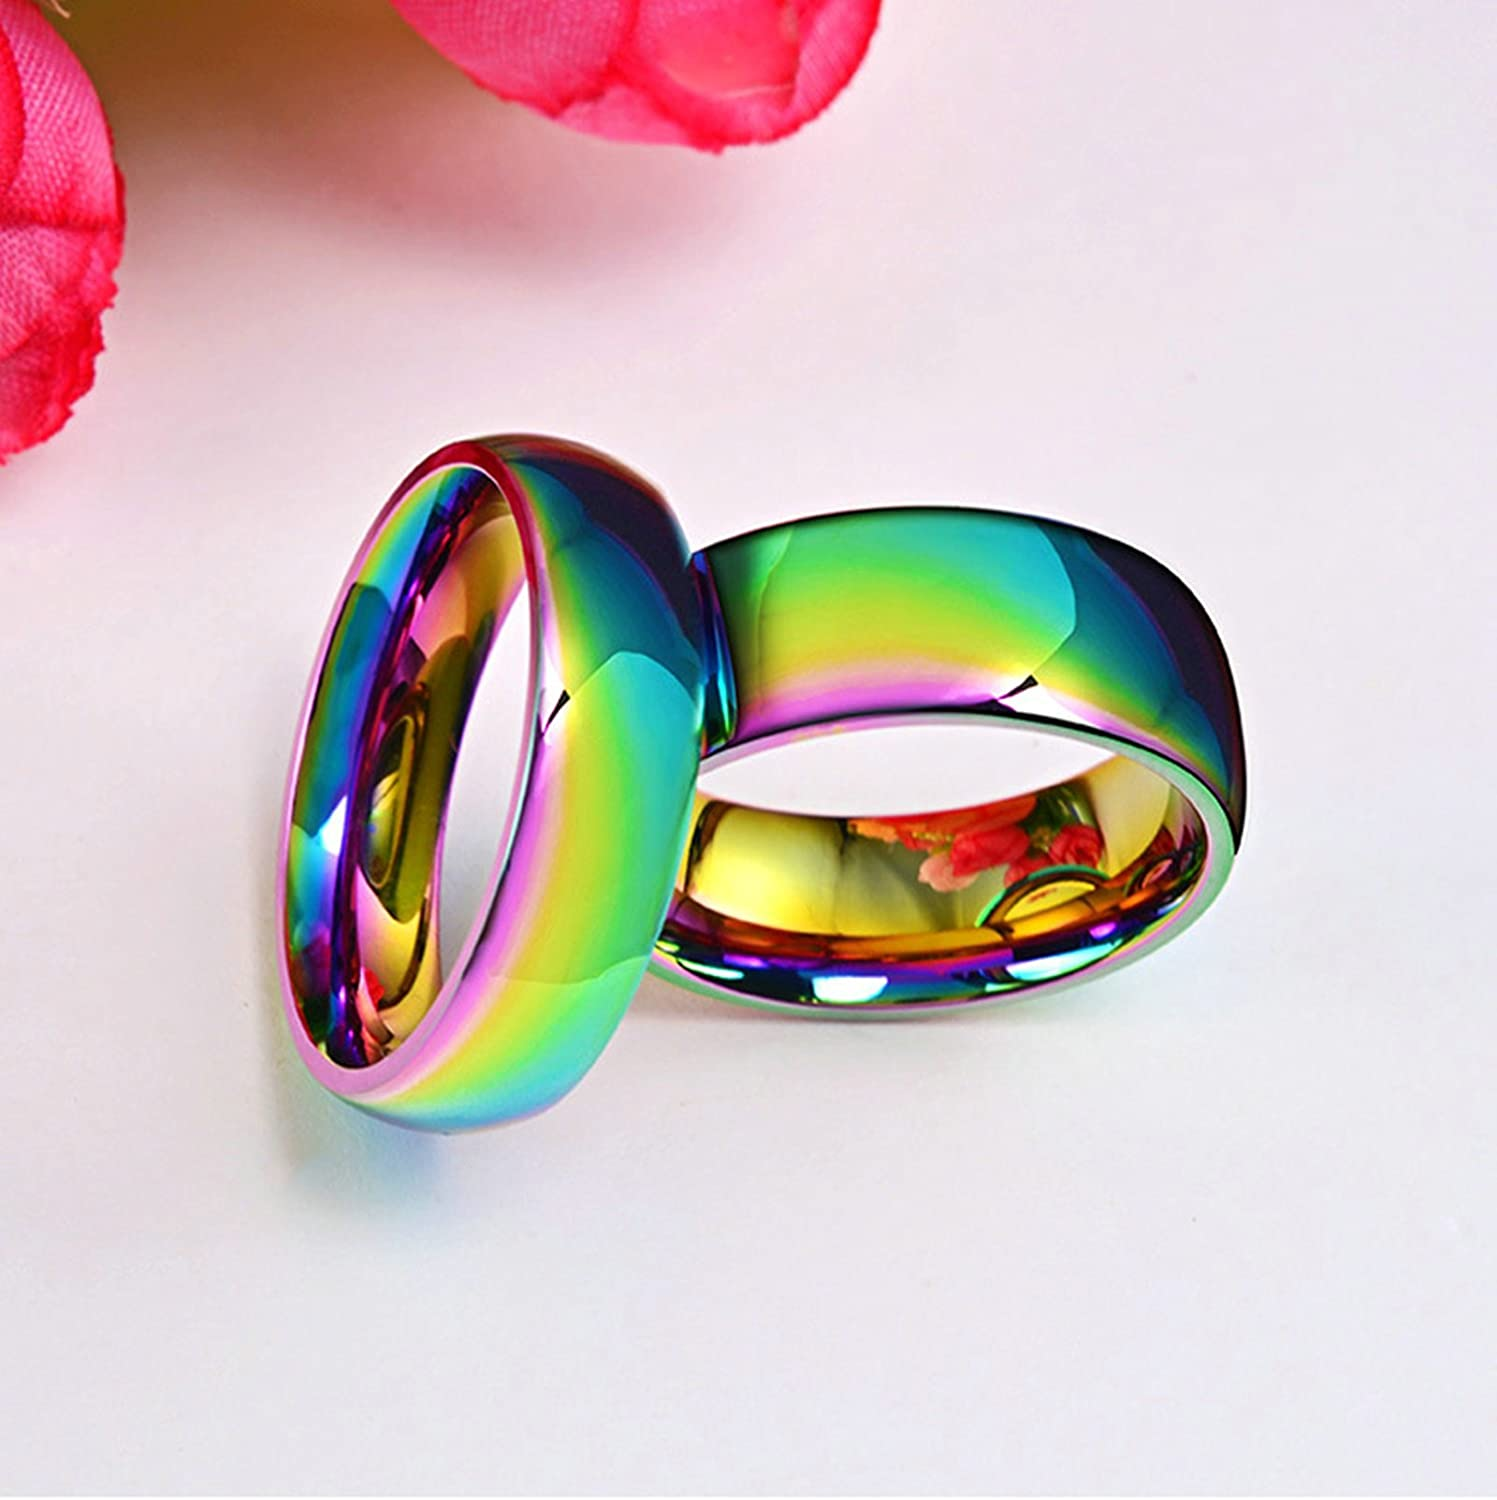 Bishilin Stainless Steel Rings for Men High Polished Round Width 8 Mm Wedding Bands for Him Size 9